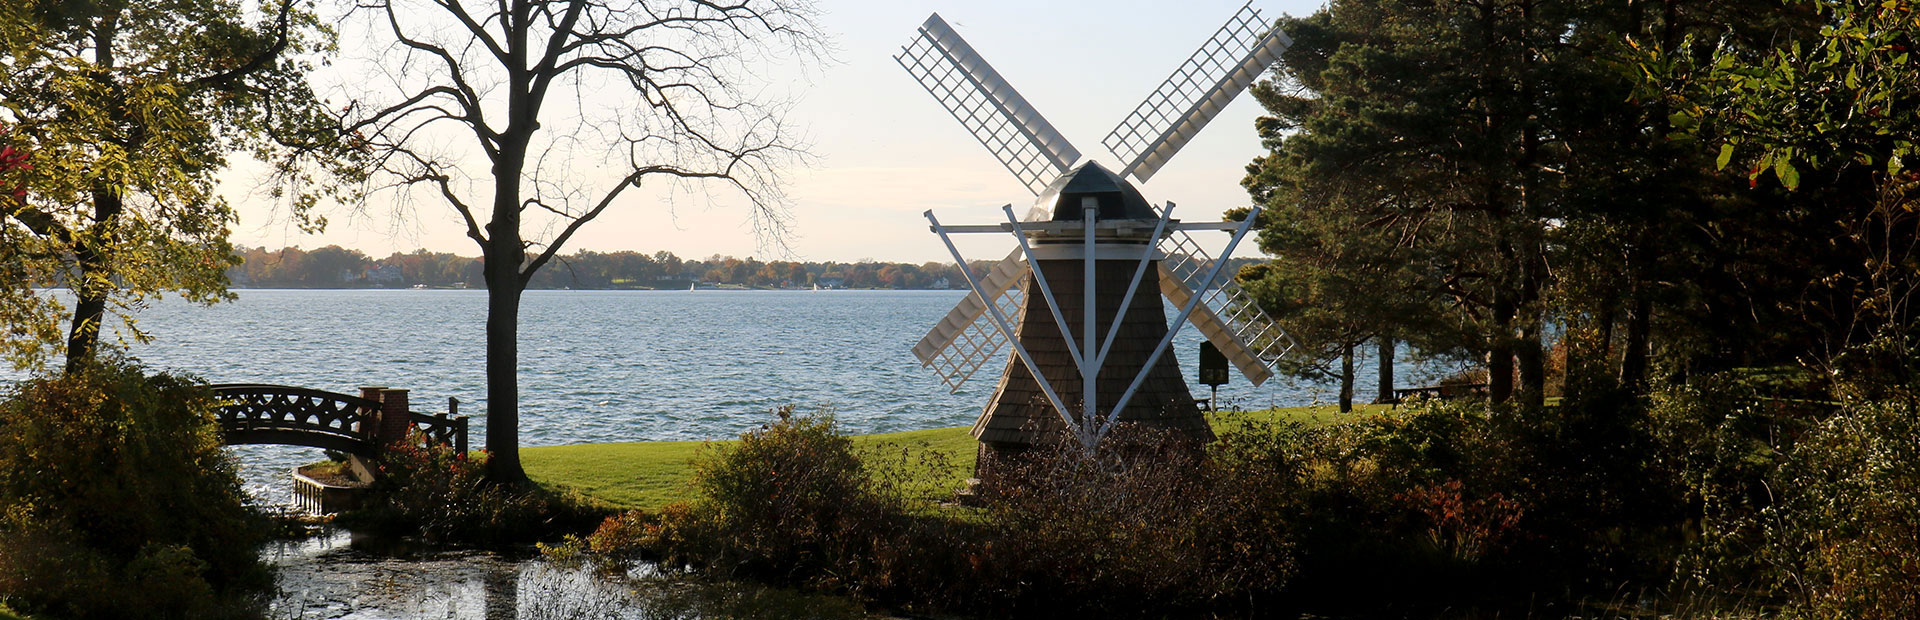 View of Gull Lake from Windmill Island, with the historic KBS windmill and foot bridge in the foreground.